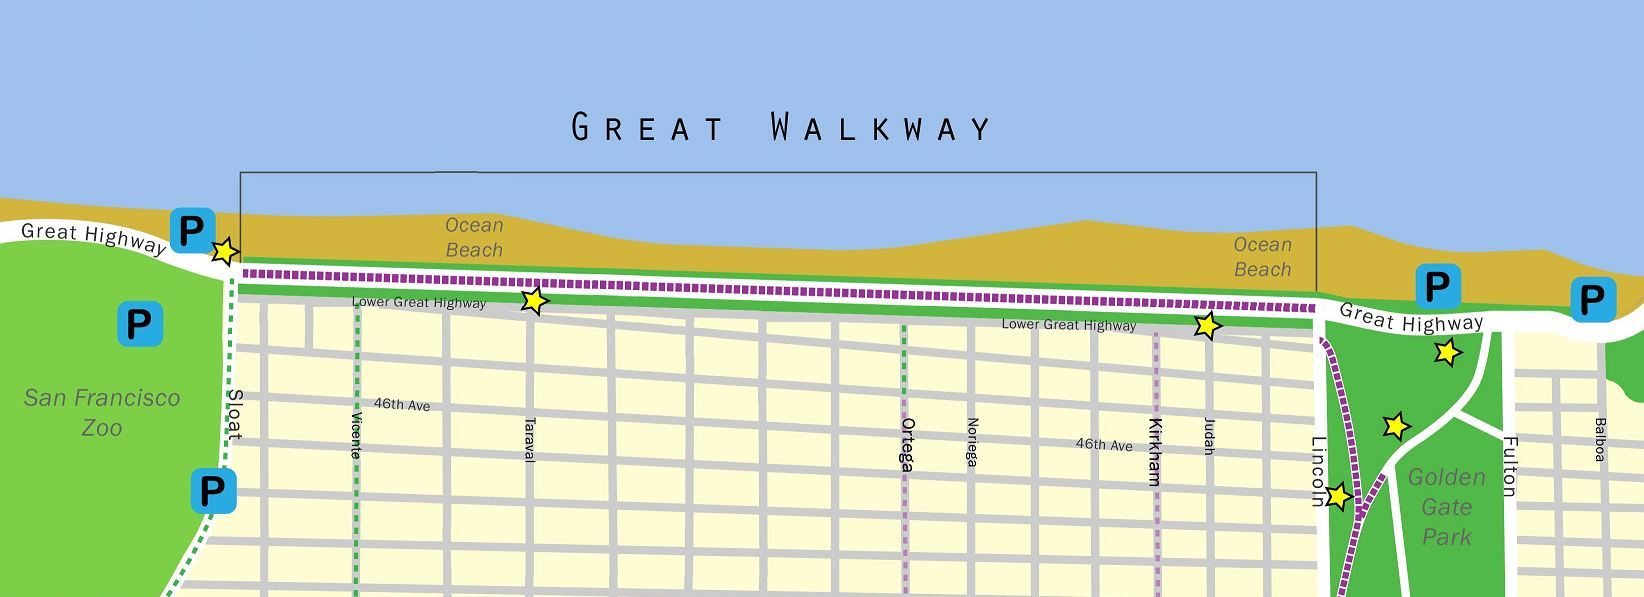 Great Walkway Horizontal Map